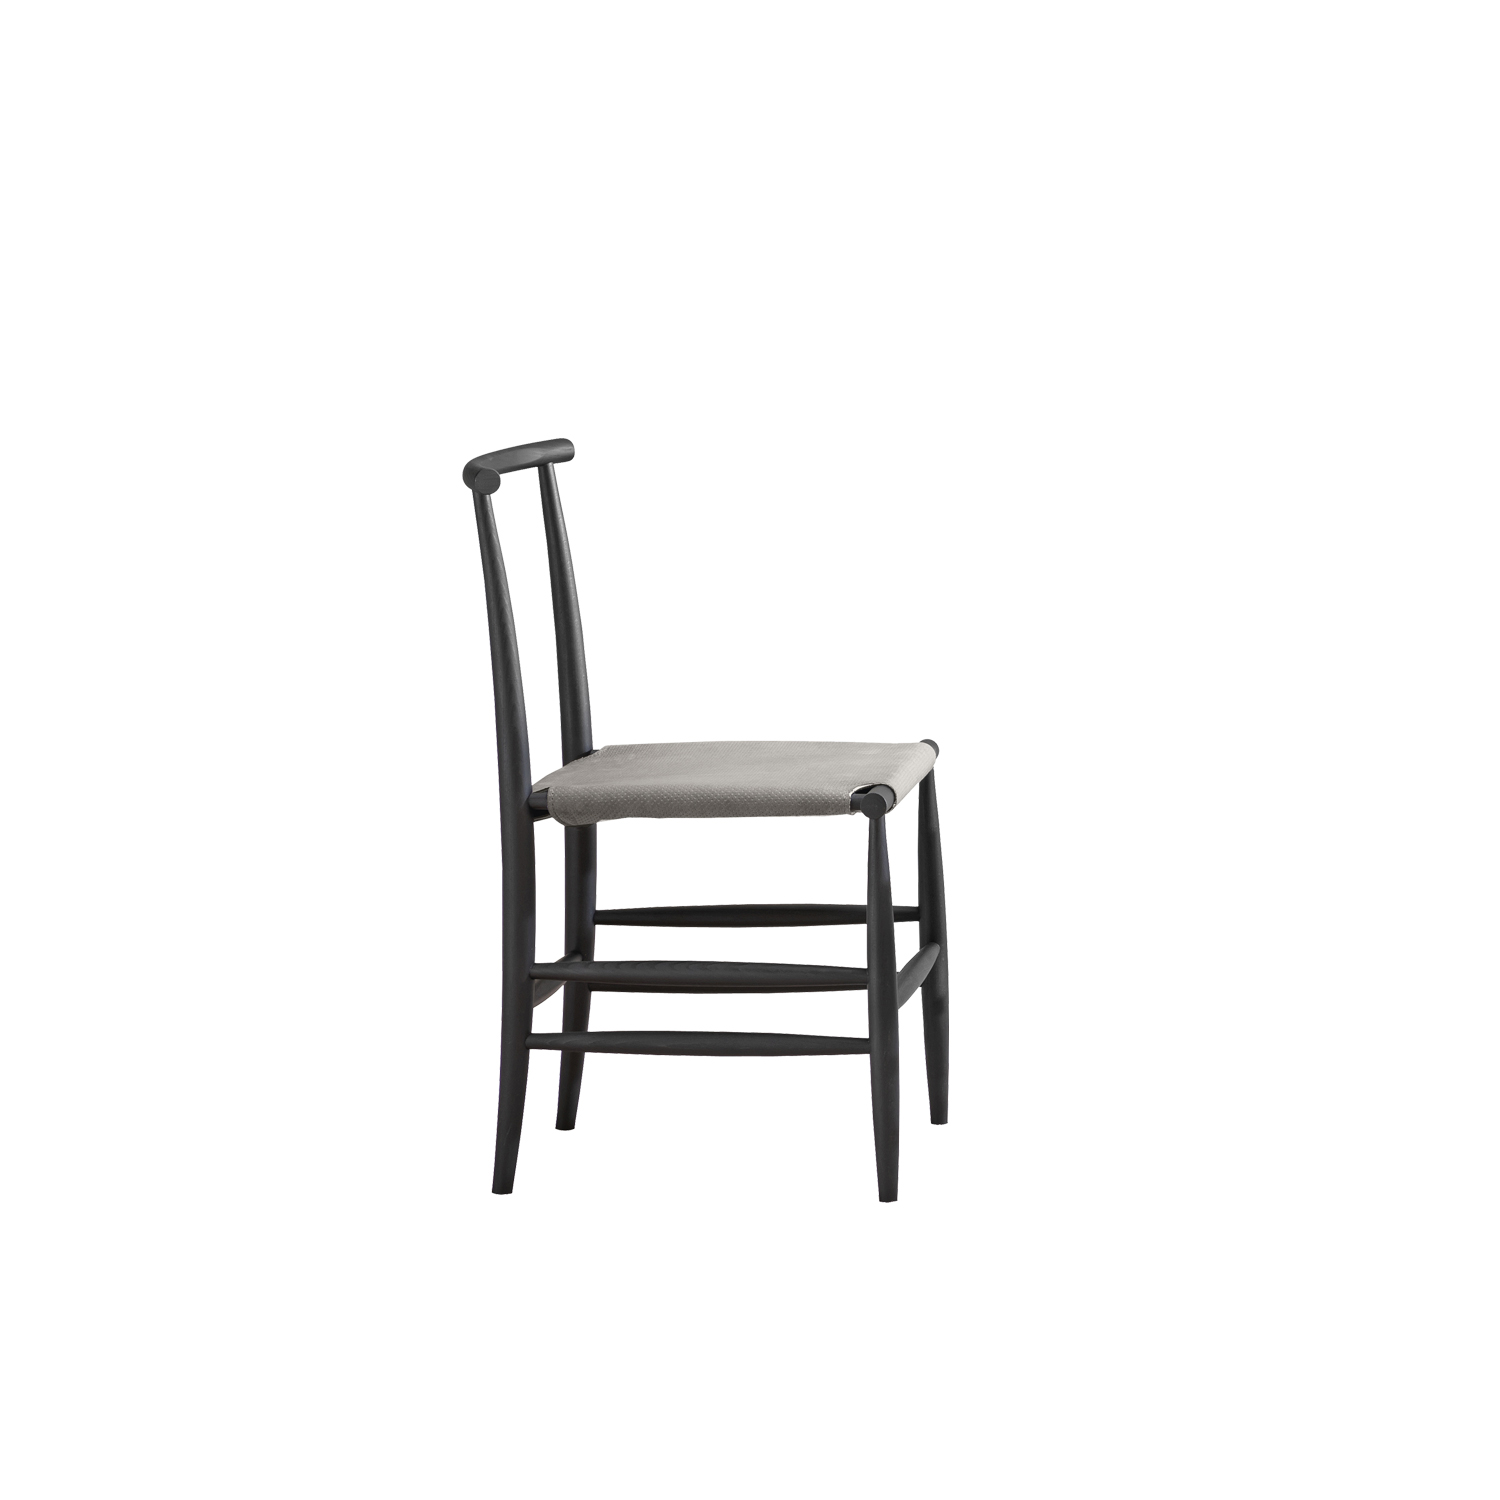 Pelleossa Chair - Pelleossa is a slender, eclectic chair that expresses its character through detail. It is inspired by the Italian chairs of pre-industrial times, sporting the attitude of conceptual art.   Also available with or without armrests, it completes with the different combinations of the seat.   | Matter of Stuff